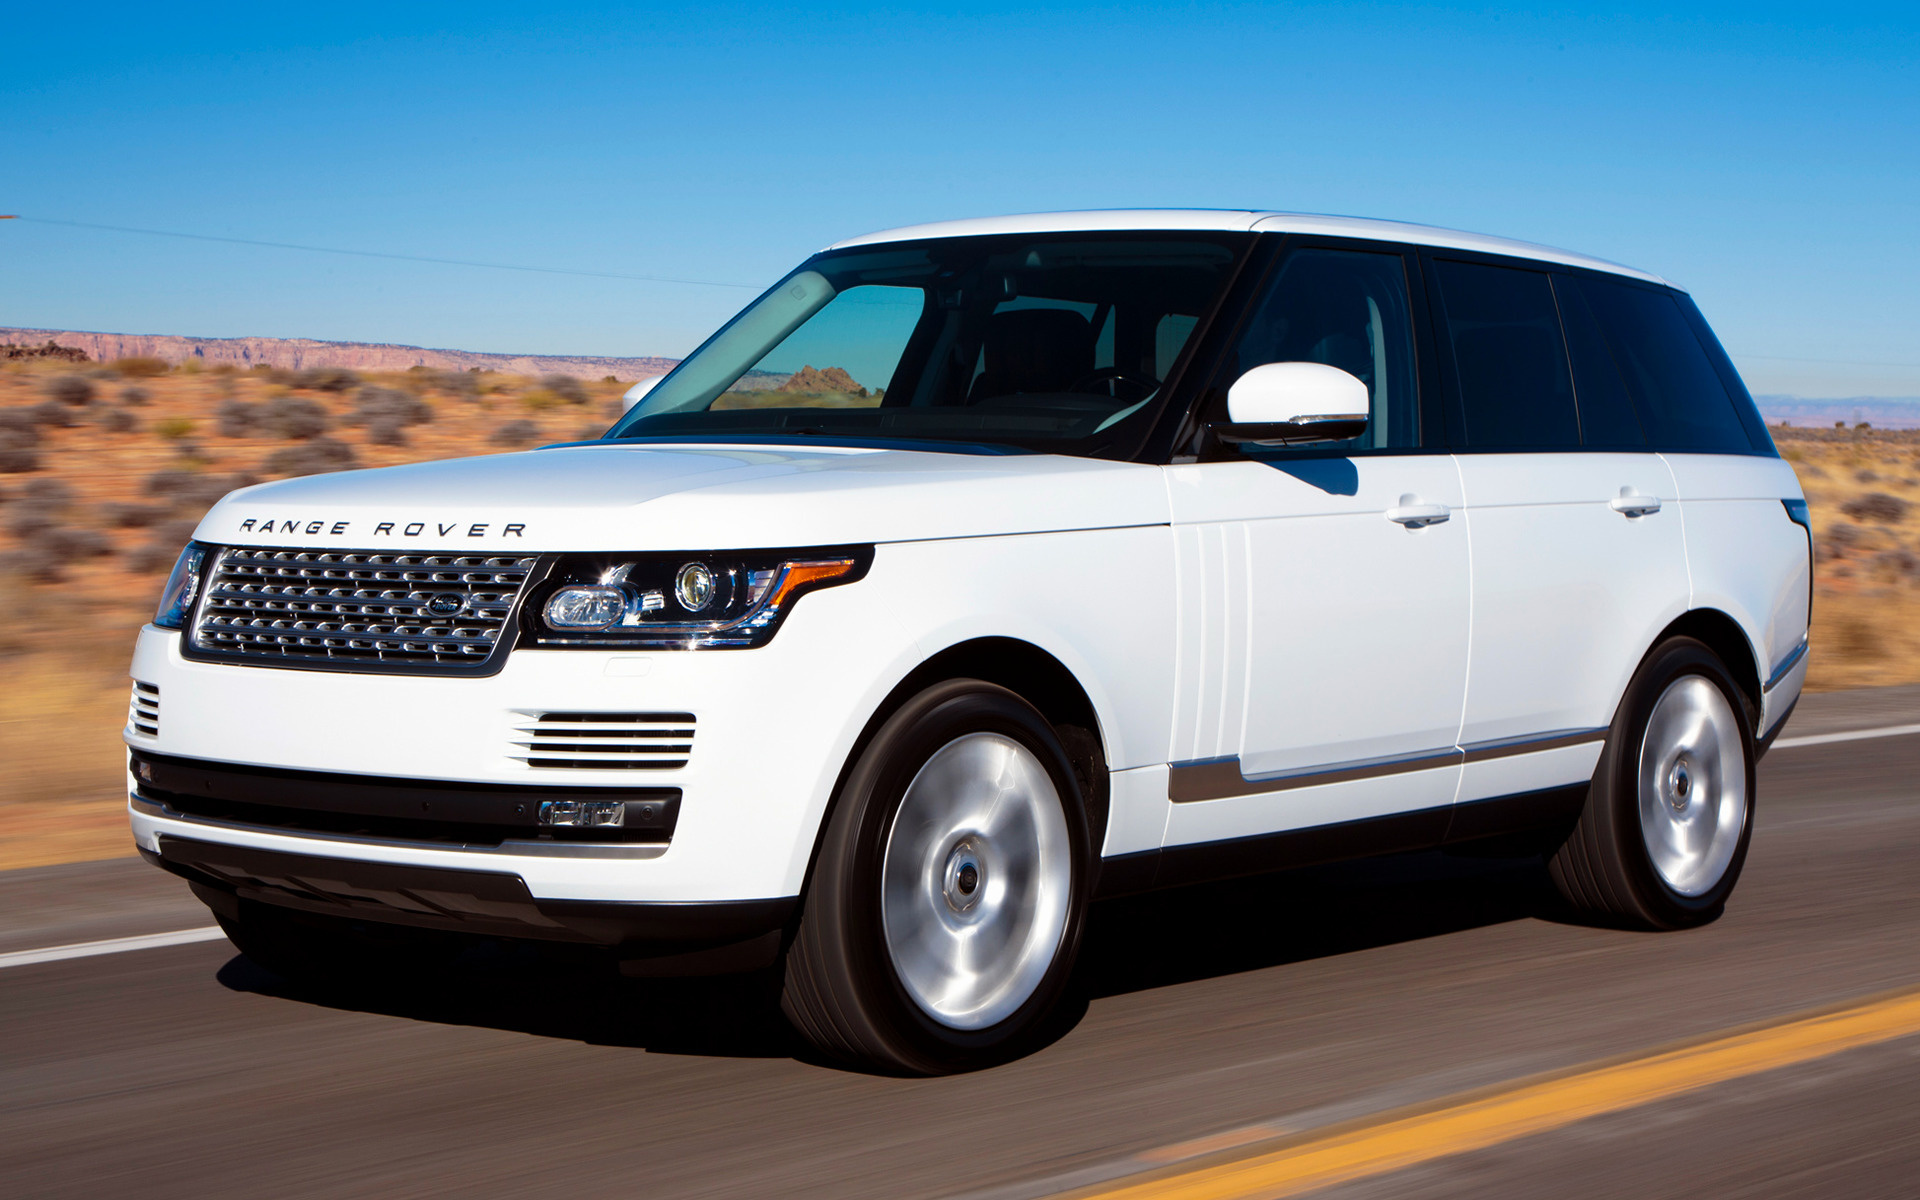 Range Rover Supercharged 2013 US Wallpapers and HD Car